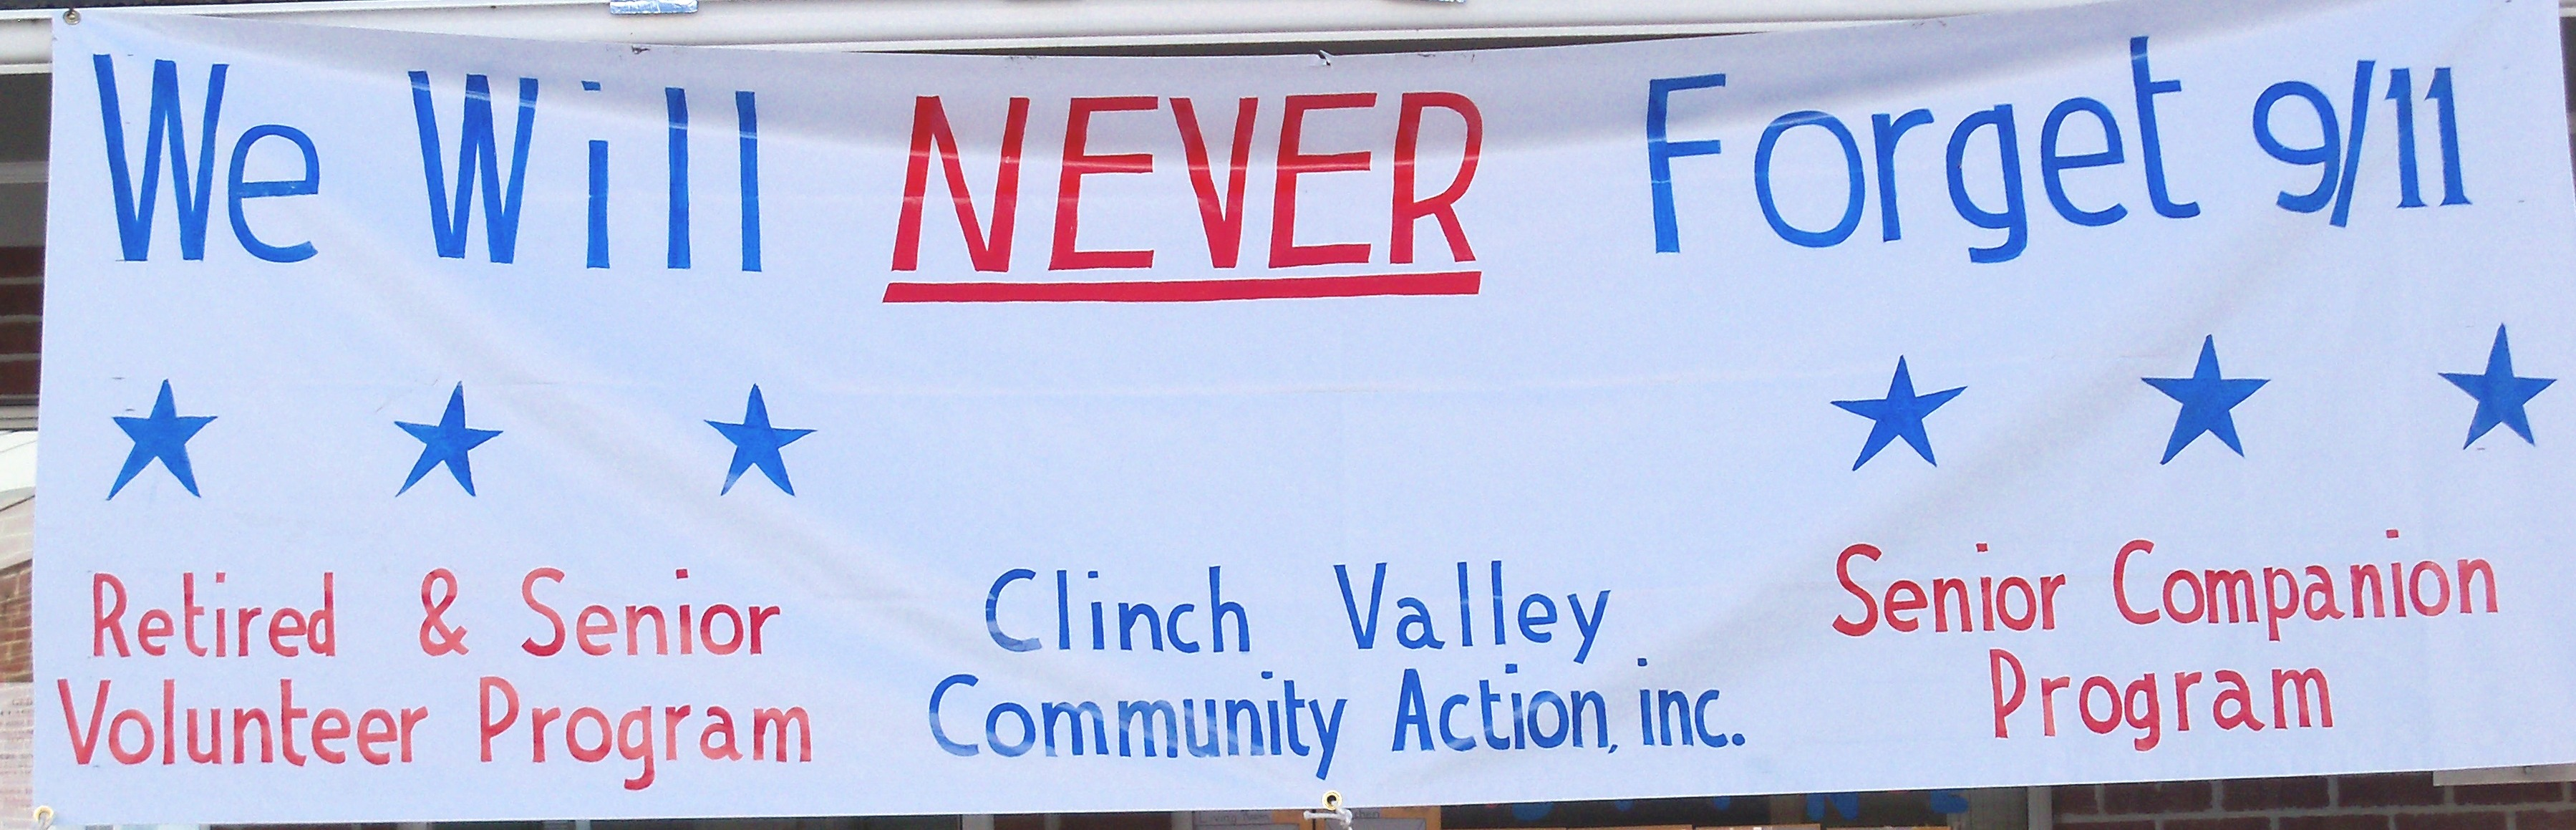 RSVP - Clinch Valley Community Action